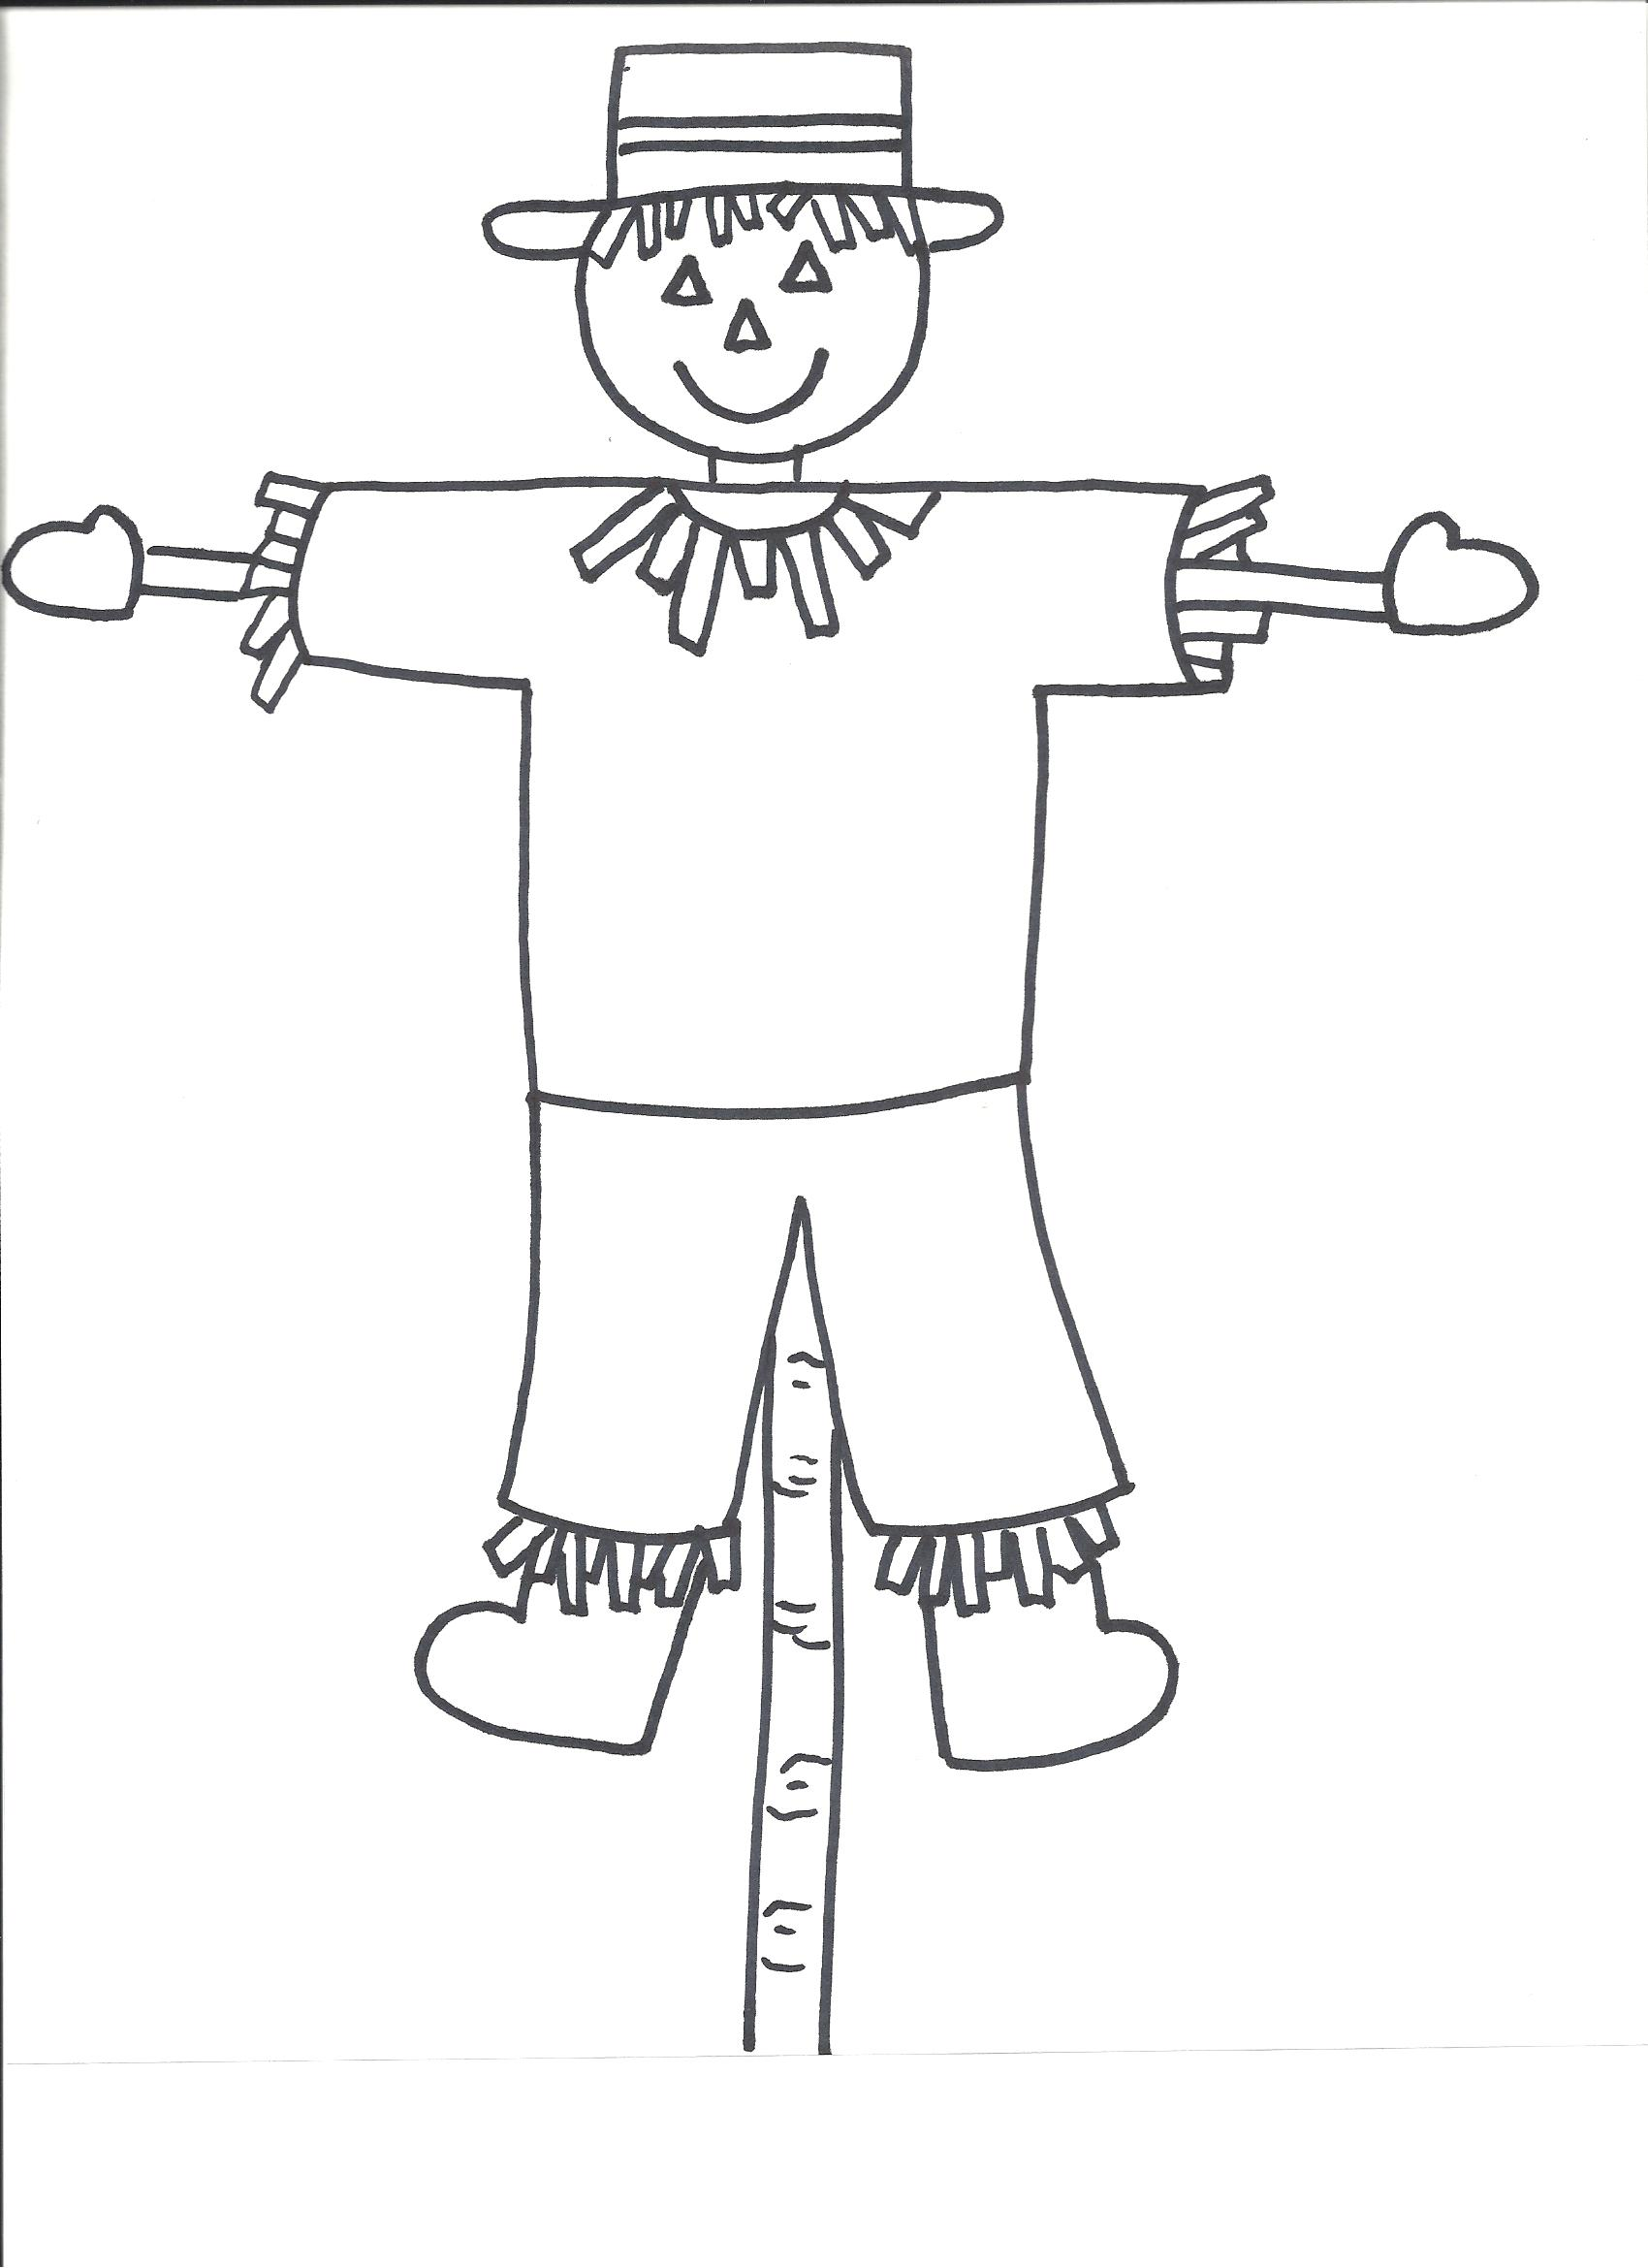 Templates - Crafts For Preschool Kids